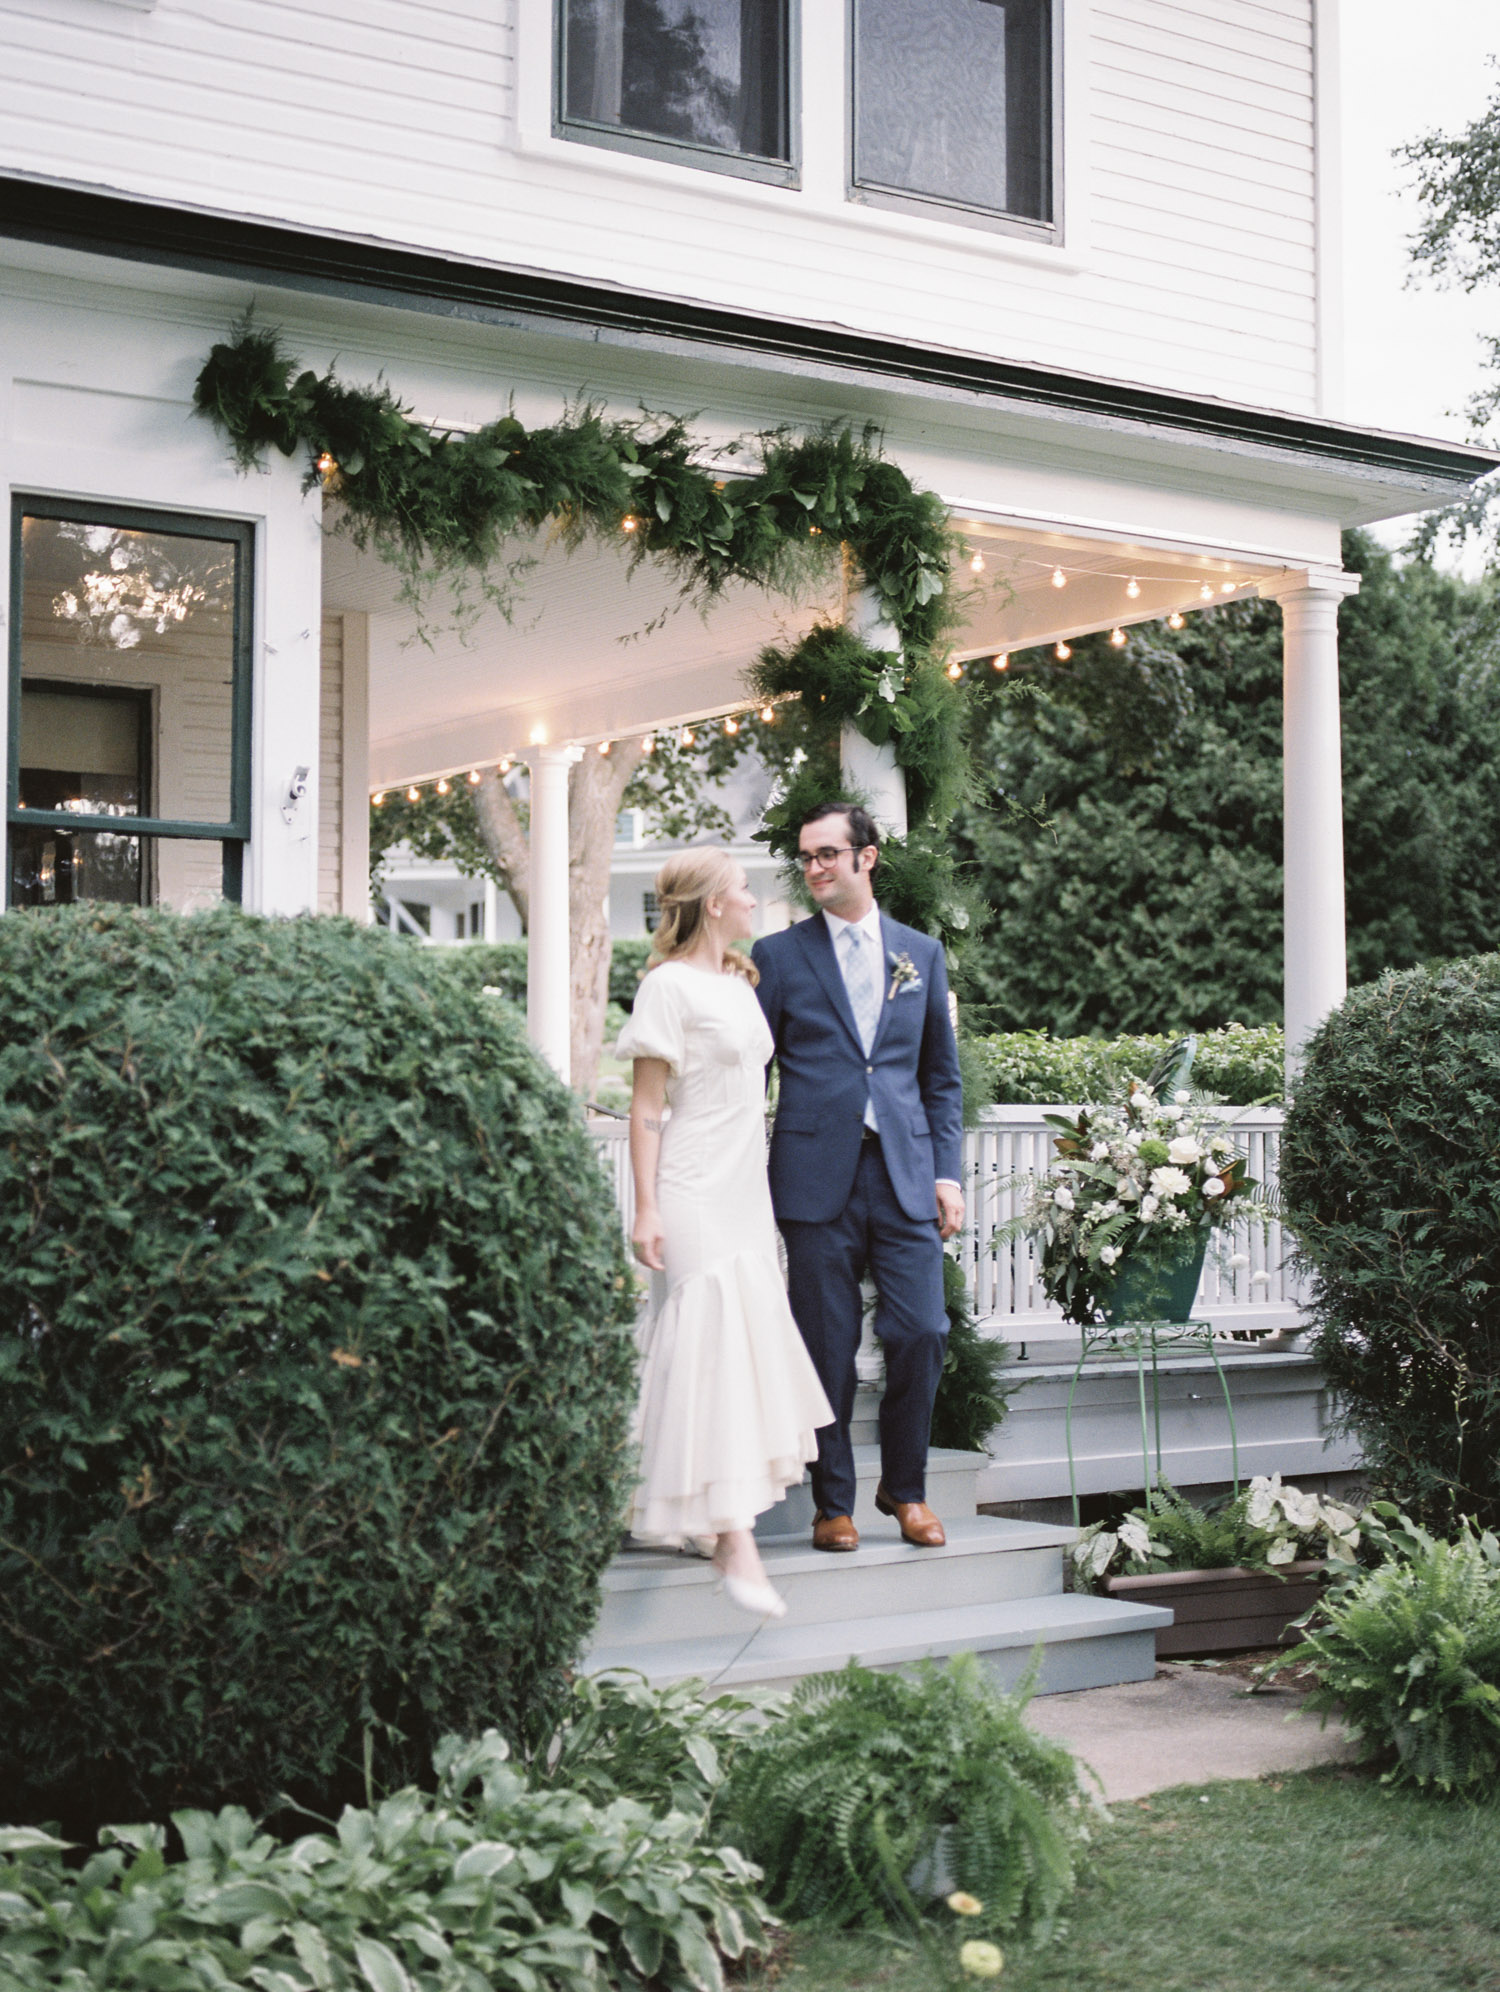 A bride and groom walk together under a greenery garland during their Petoskey, Michigan wedding